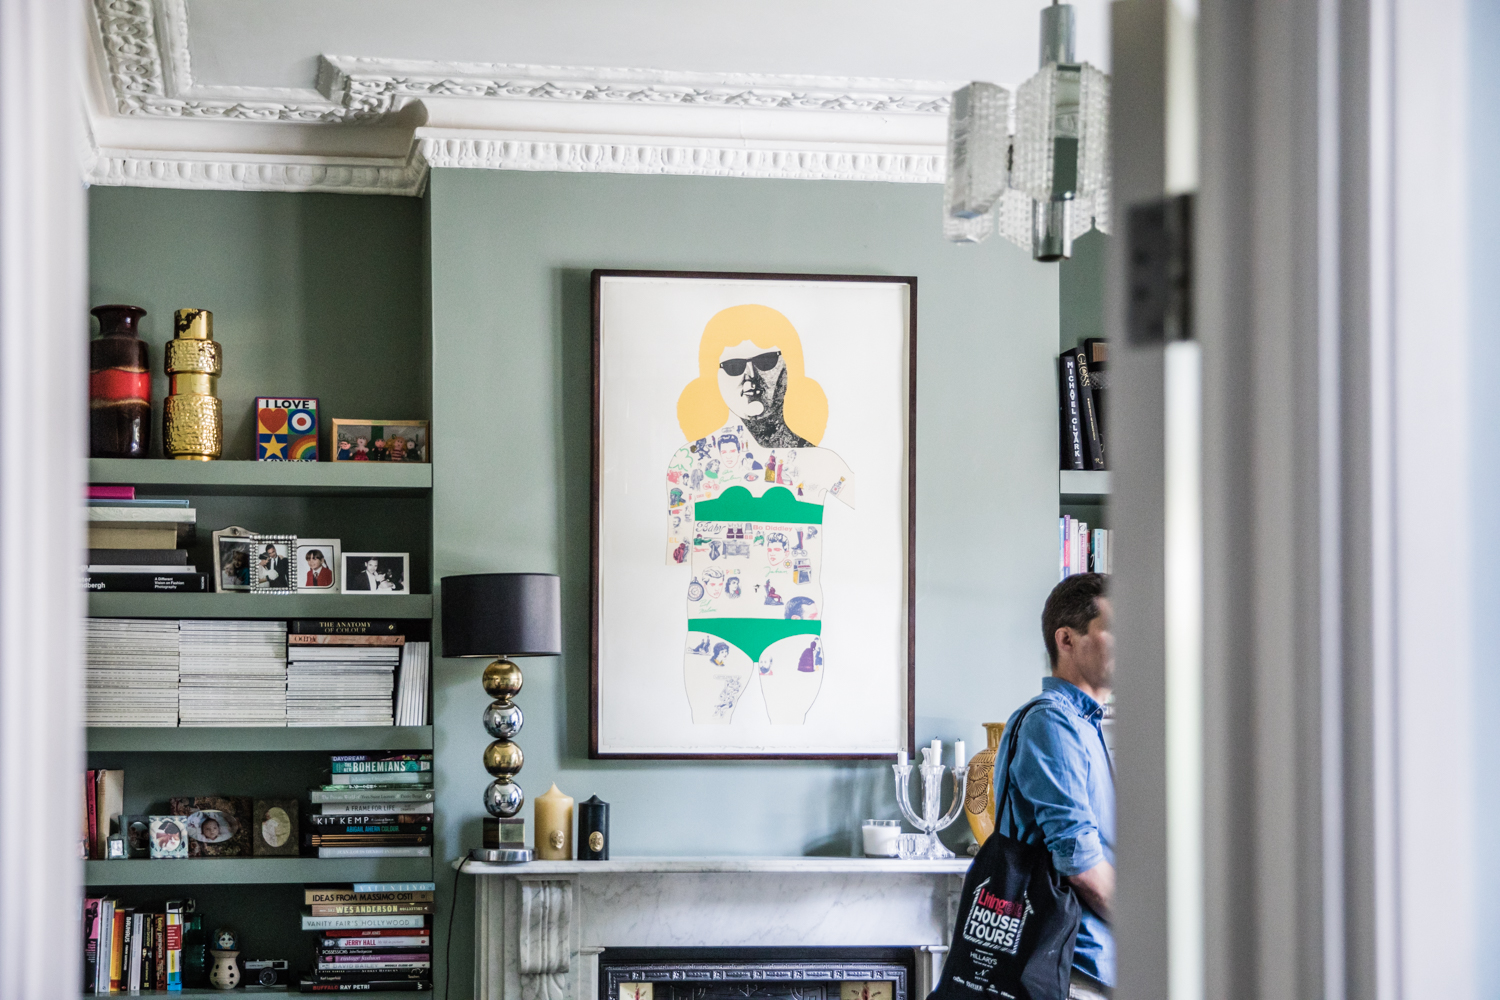 Walls painted in  Card Room Green  by Farrow and Ball